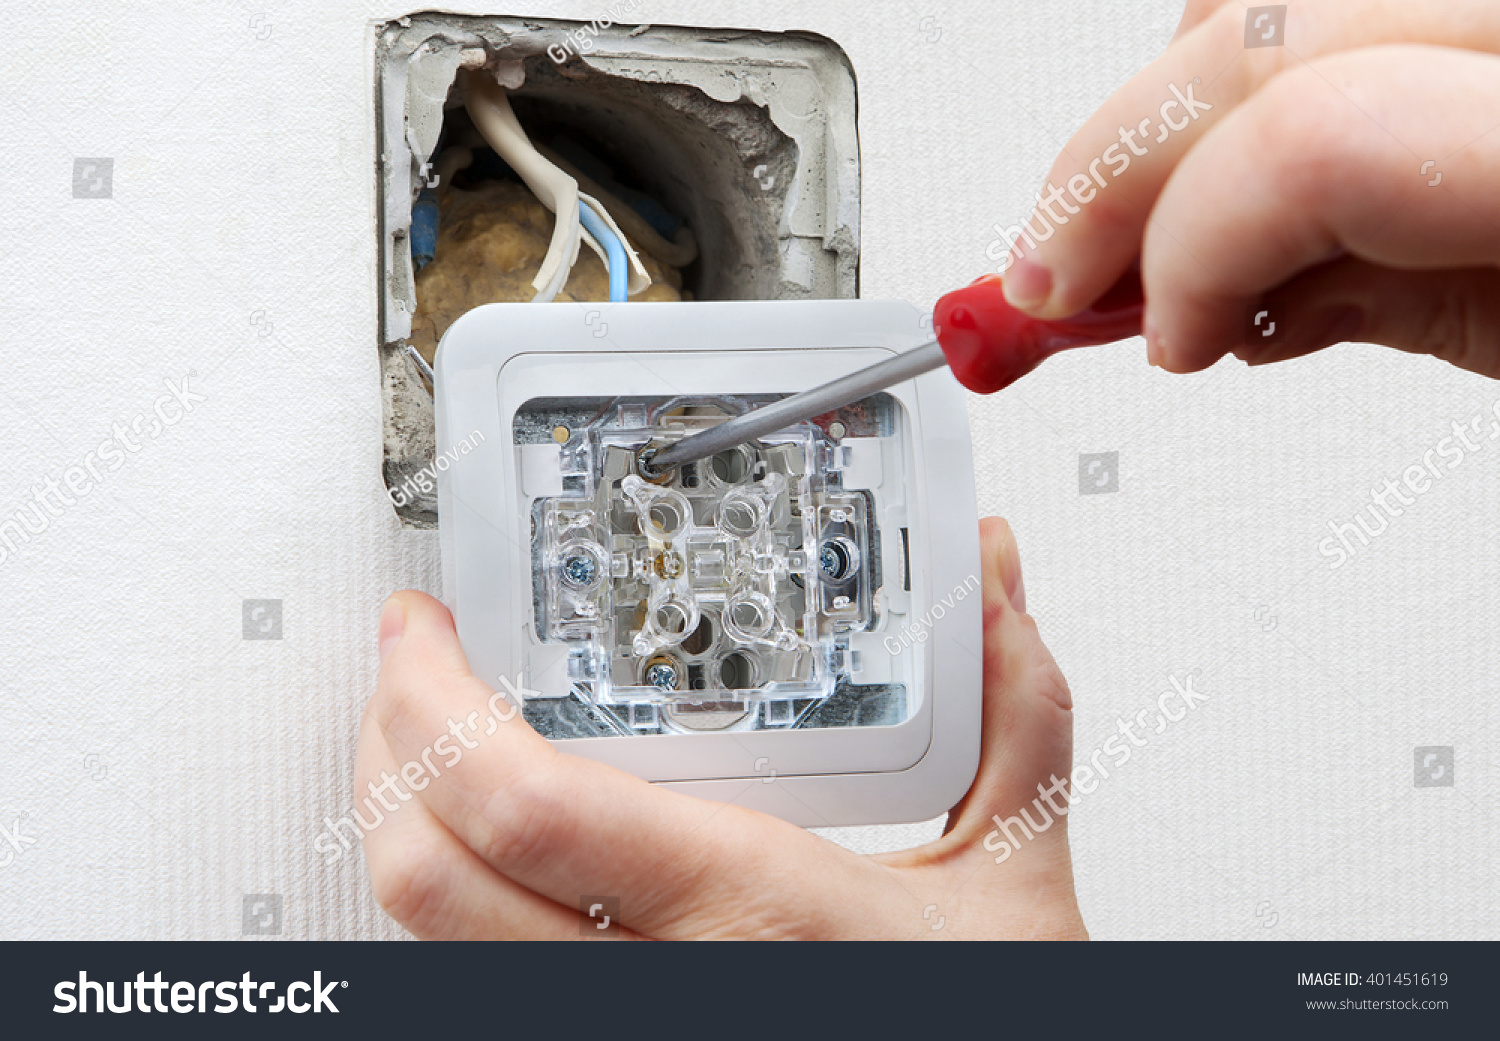 Change Light Switch Mounted Electrical Stock Photo Edit Now Wiring A House Switches Connect Wires From